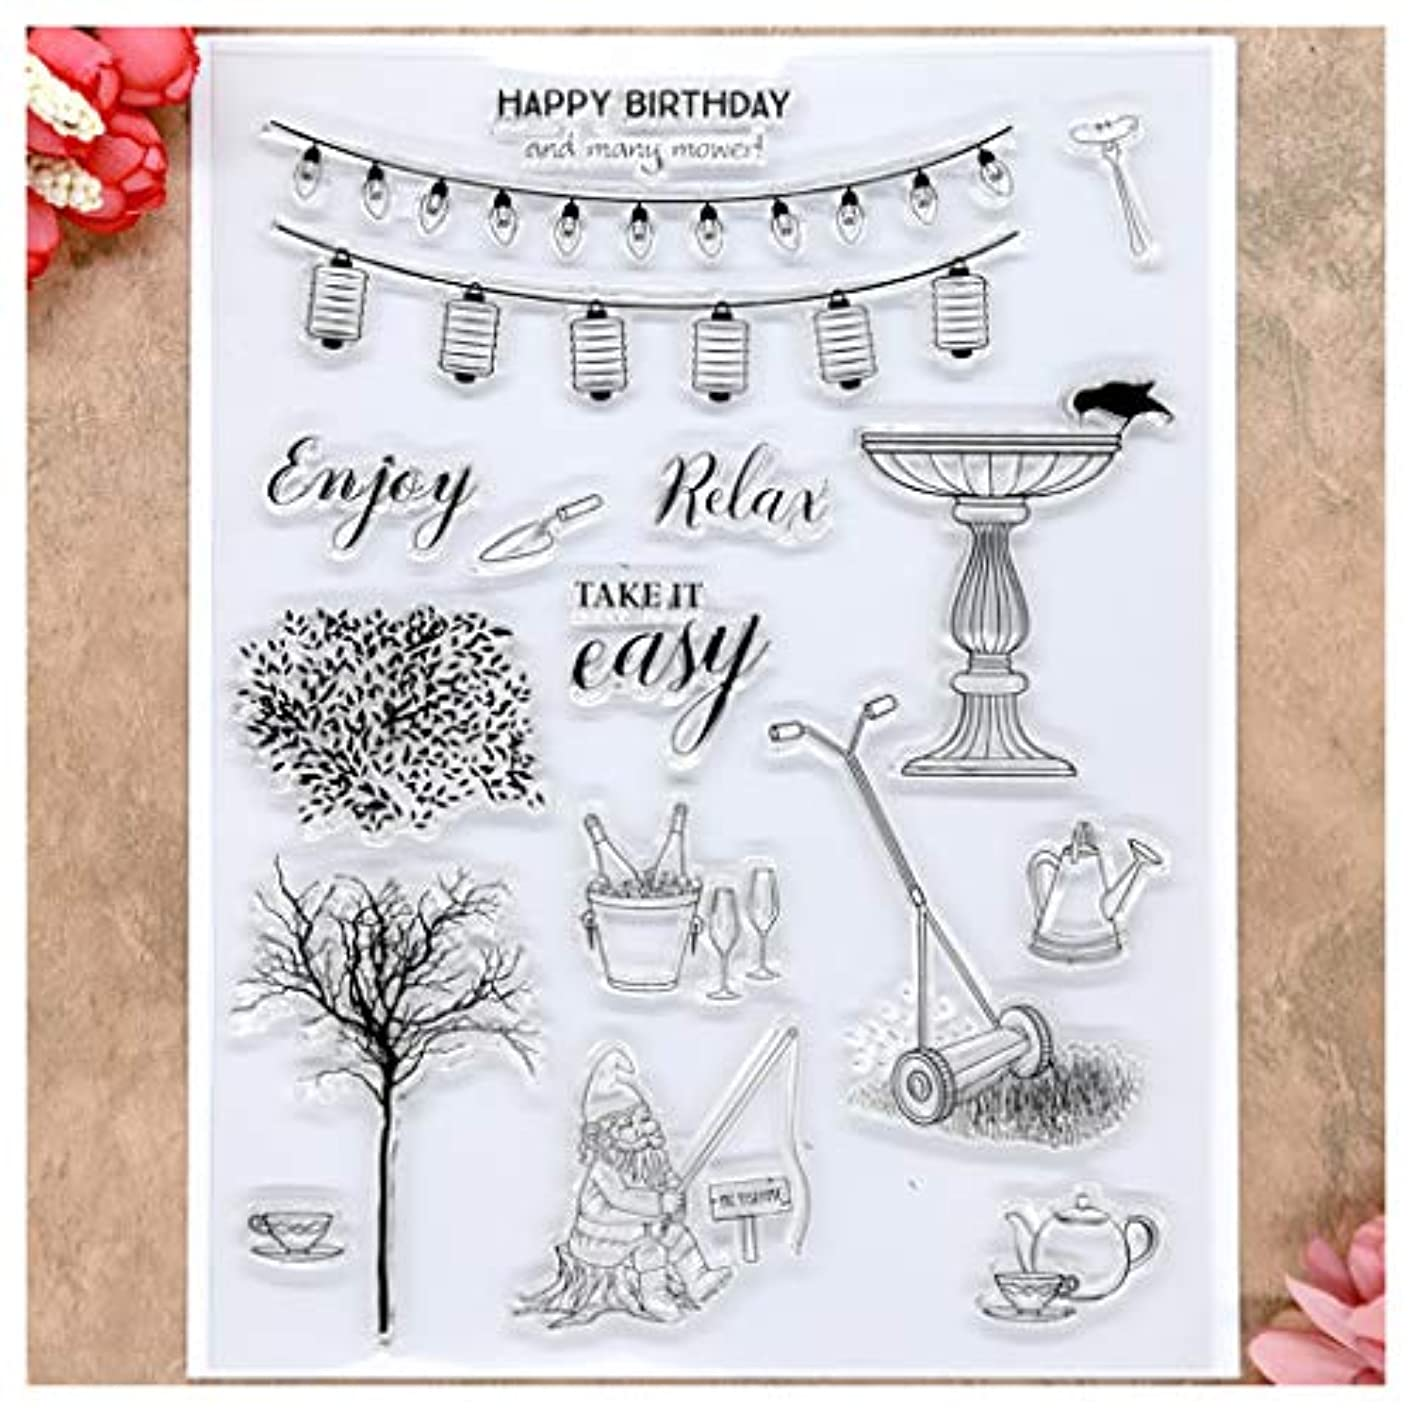 Kwan Crafts Happy Birthday Enjoy Relax Party Light Clear Stamps for Card Making Decoration and DIY Scrapbooking